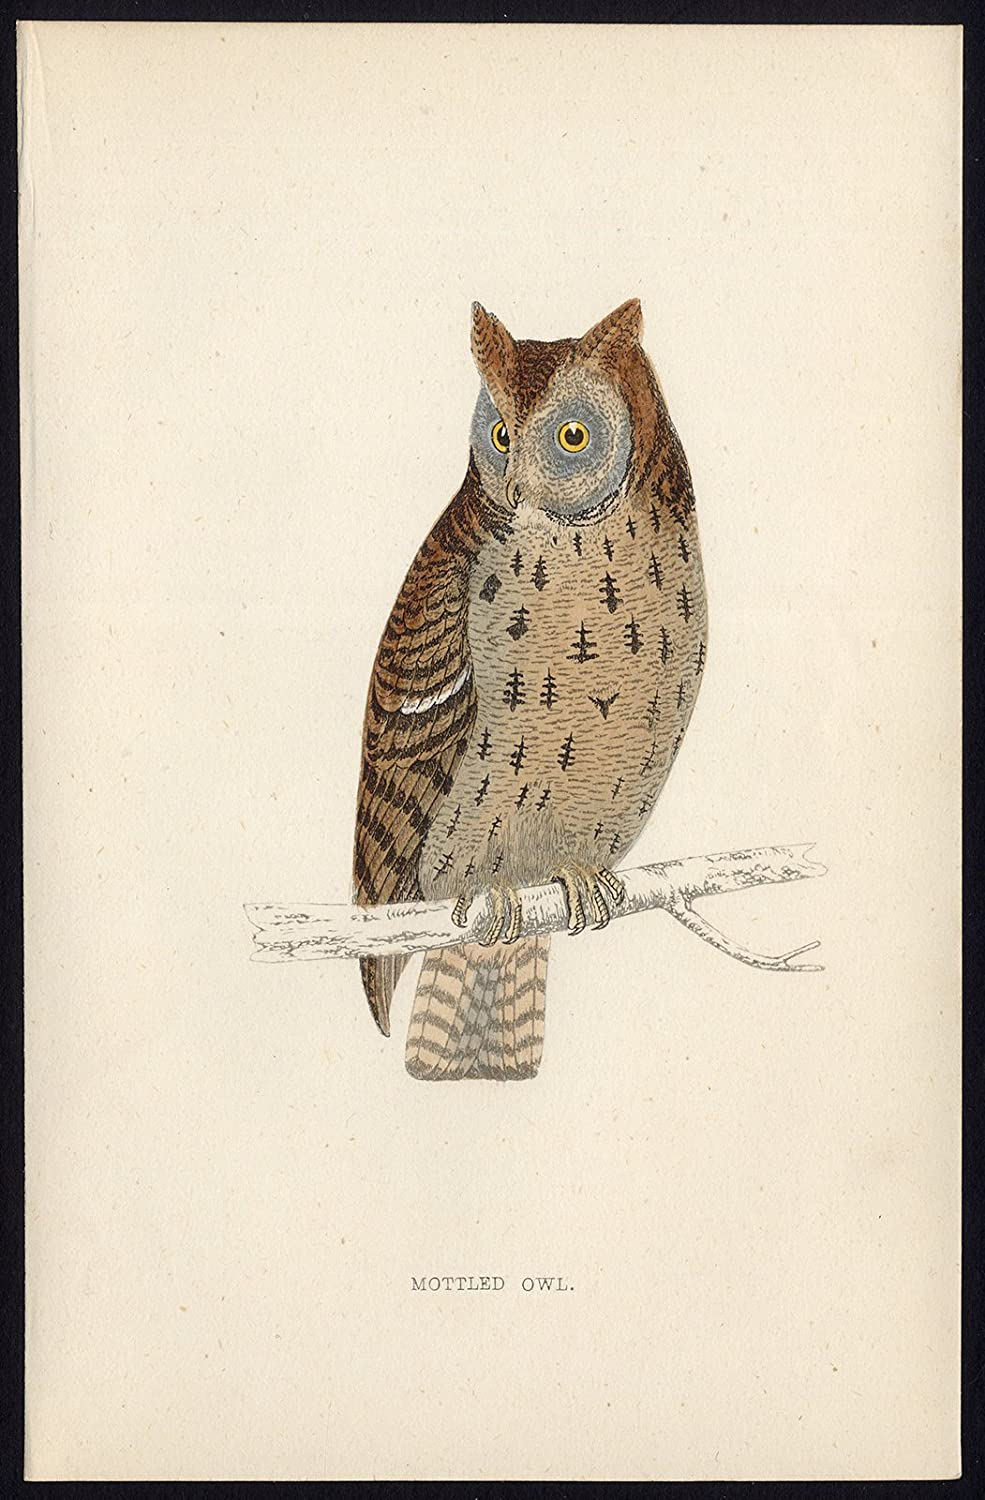 Antique Print-MOTTLED OWL-STRIX VIRGATA-BIRD OF PREY-Morris-1850 ThePrintsCollector